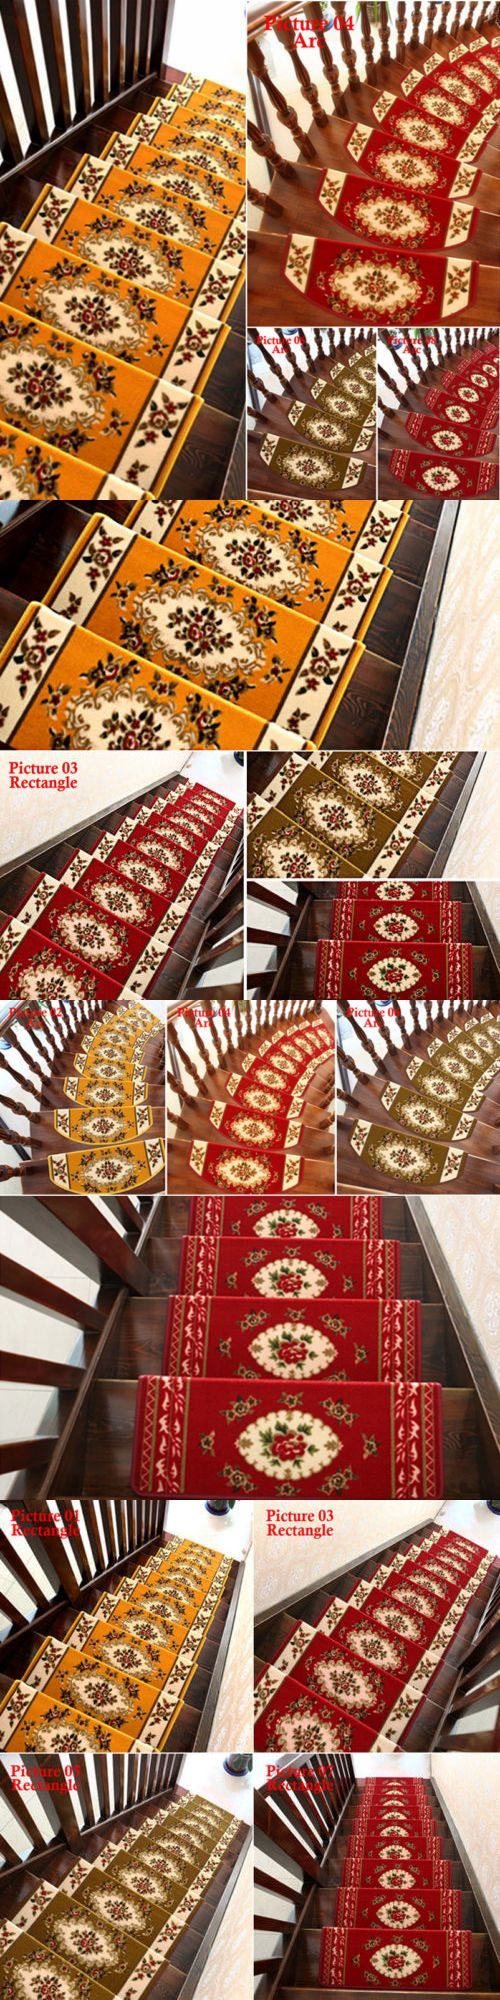 Best Stair Treads 175517 13 Pieces Stair Treads Staircase Mat 400 x 300